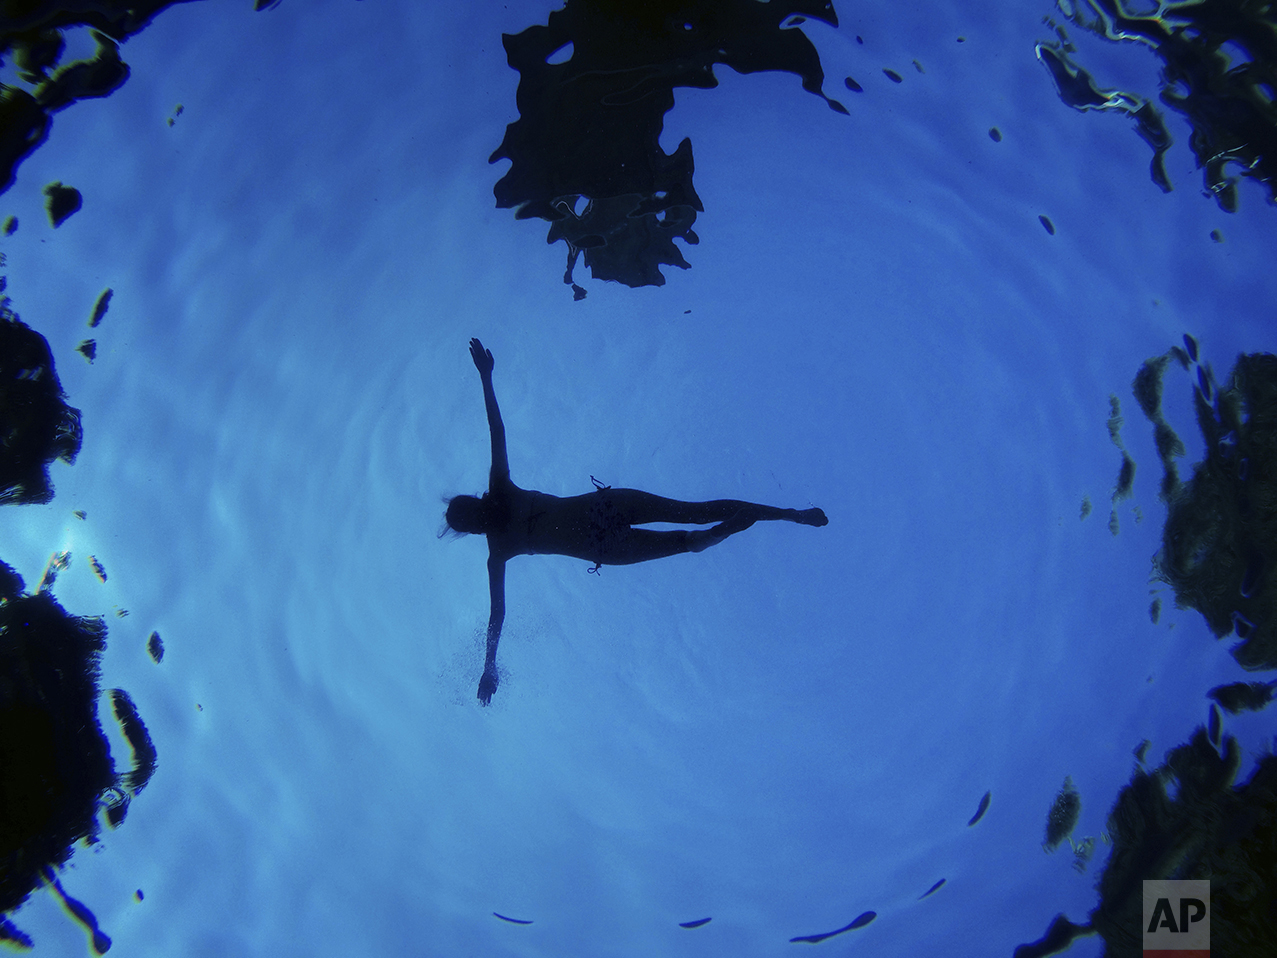 In this underwater picture a woman floats in a swimming pool during a summer day in Madrid, Spain, Aug. 28, 2016. (AP Photo/Daniel Ochoa de Olza)